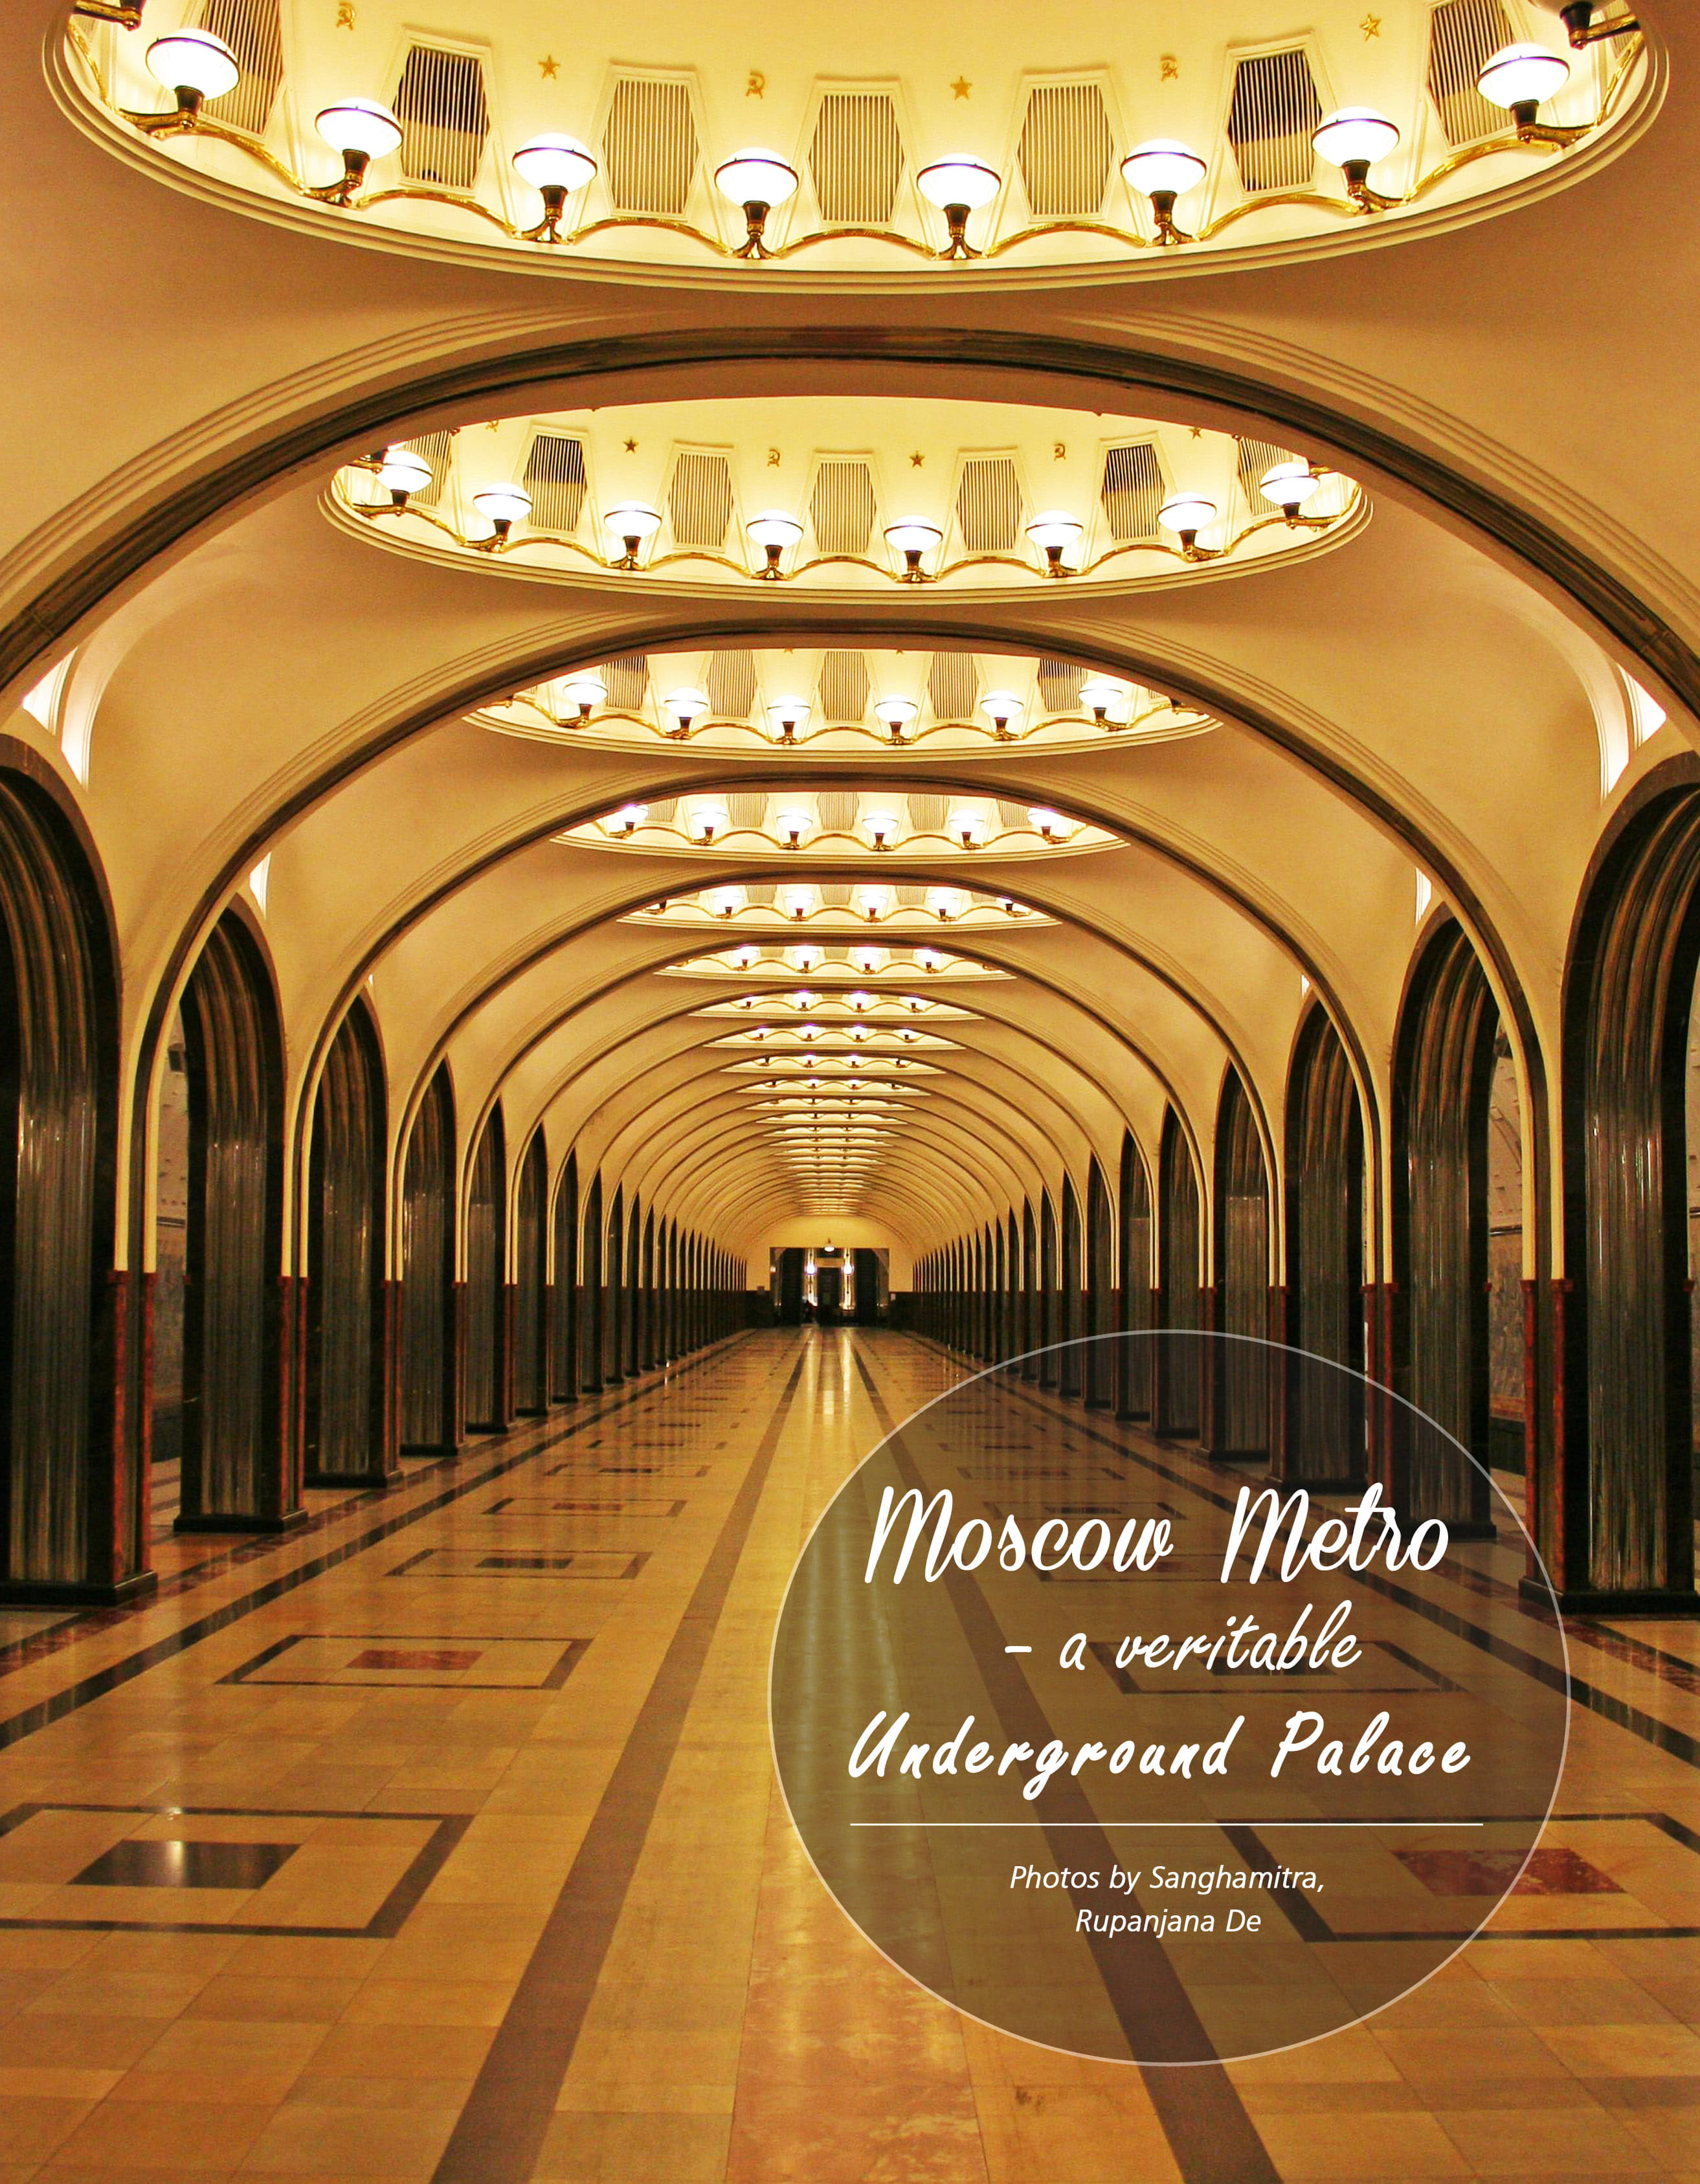 Moscow Metro - a veritable Underground Palace